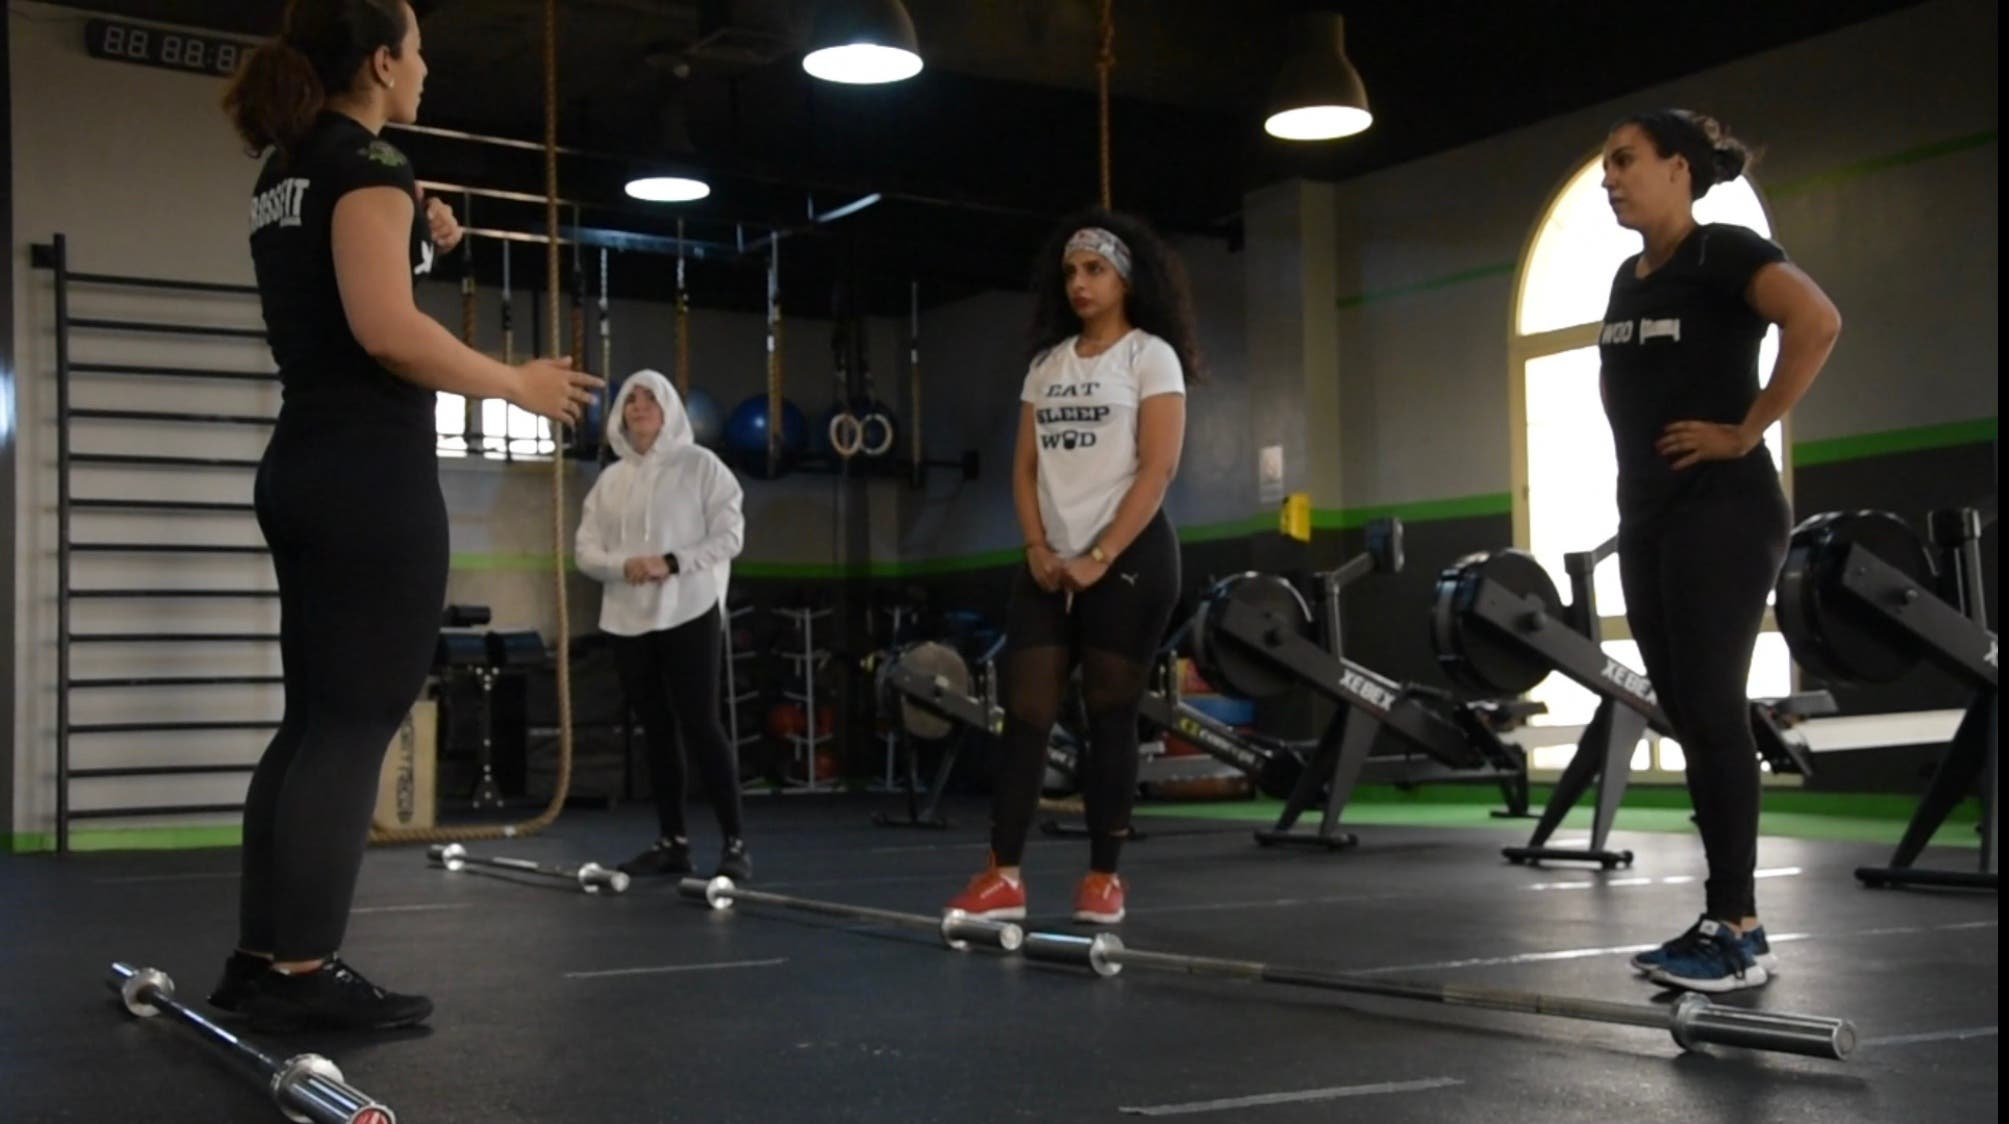 Watch Saudi Arabia S First Crossfit Community Of Women Al Arabiya English Following these amazing crossfit women on instagram should do the trick. saudi arabia s first crossfit community